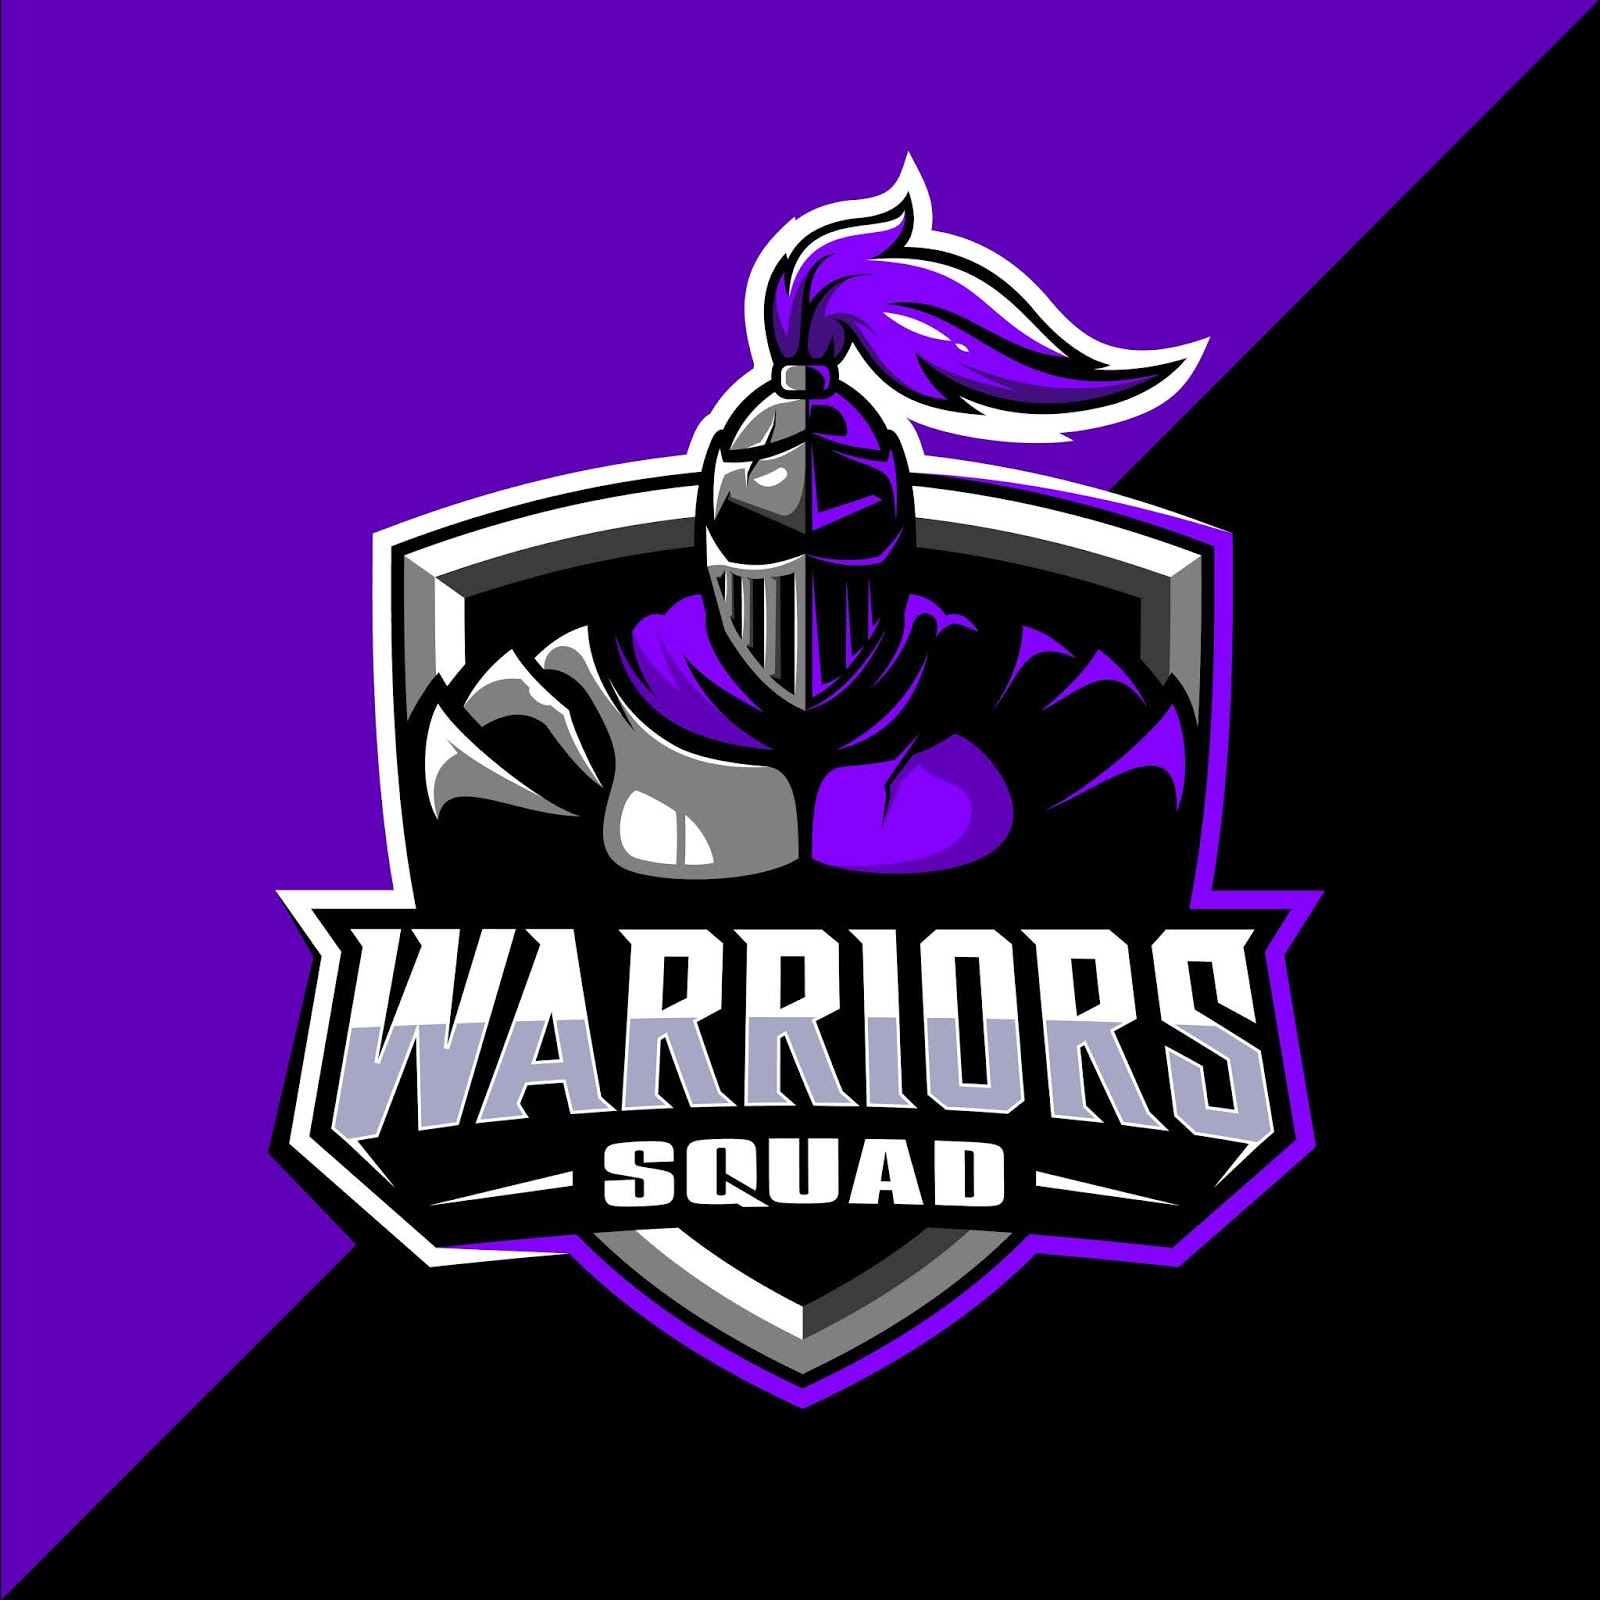 Spartan Warrior Squad Mascot Esport Logo Design Free Download Vector CDR, AI, EPS and PNG Formats